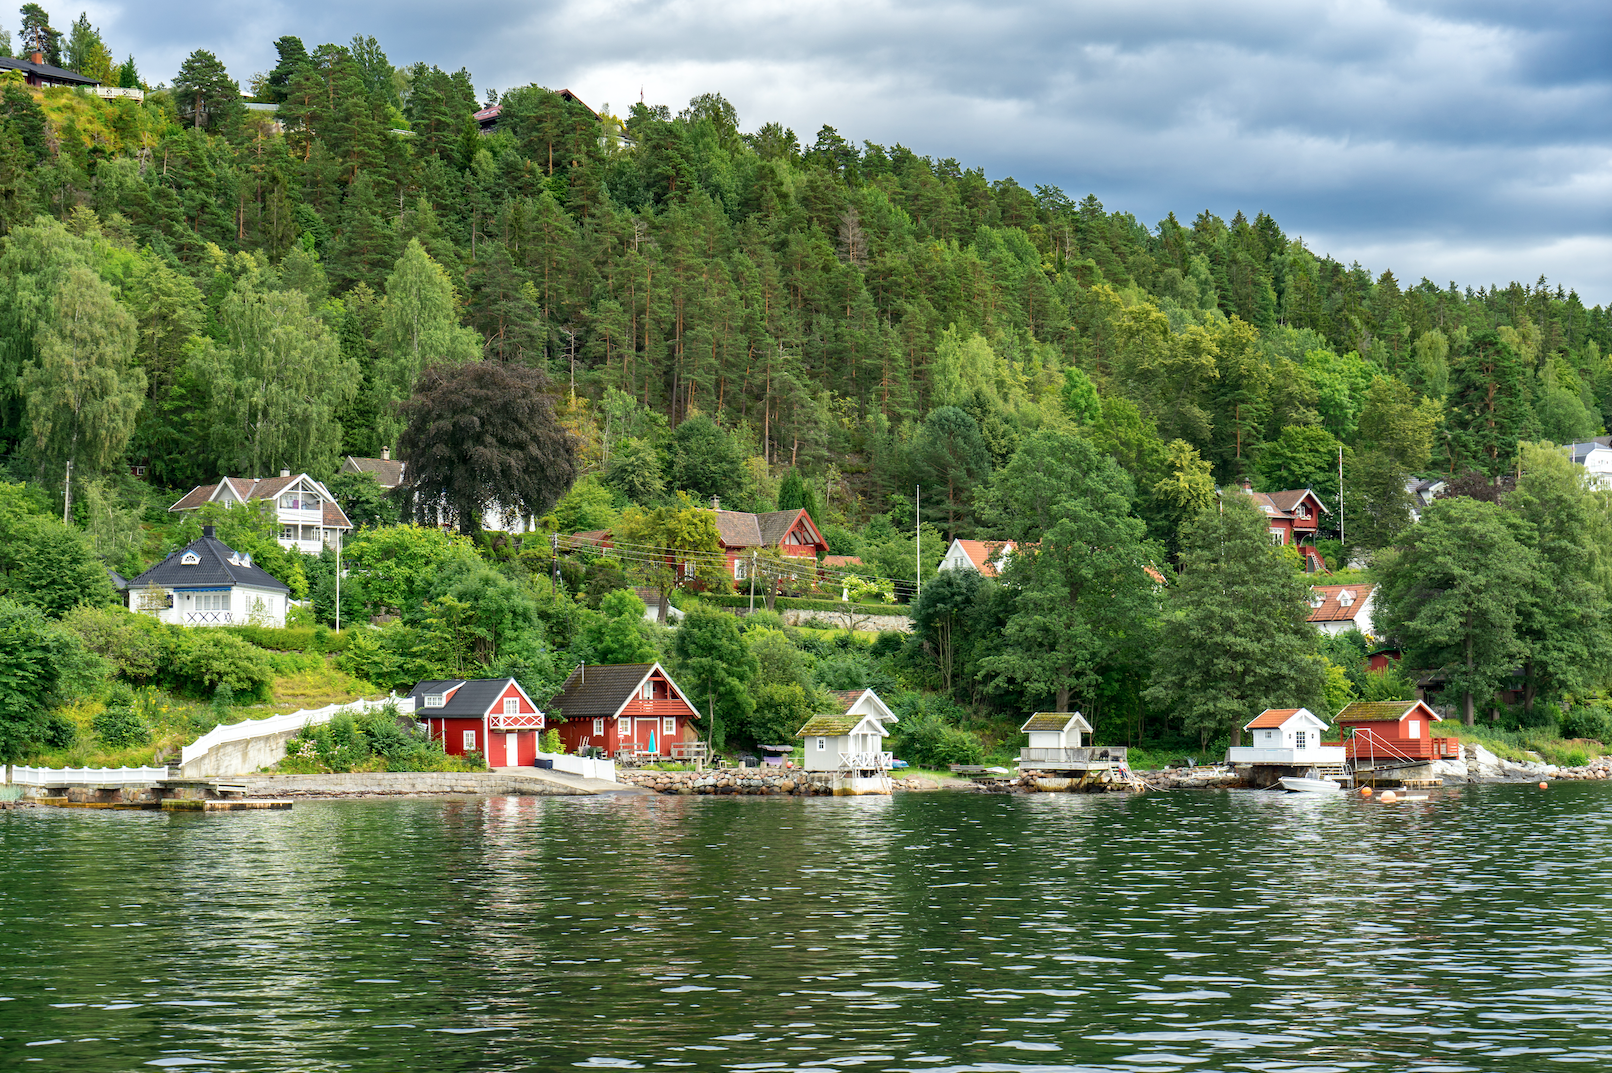 View of summer houses on an island.